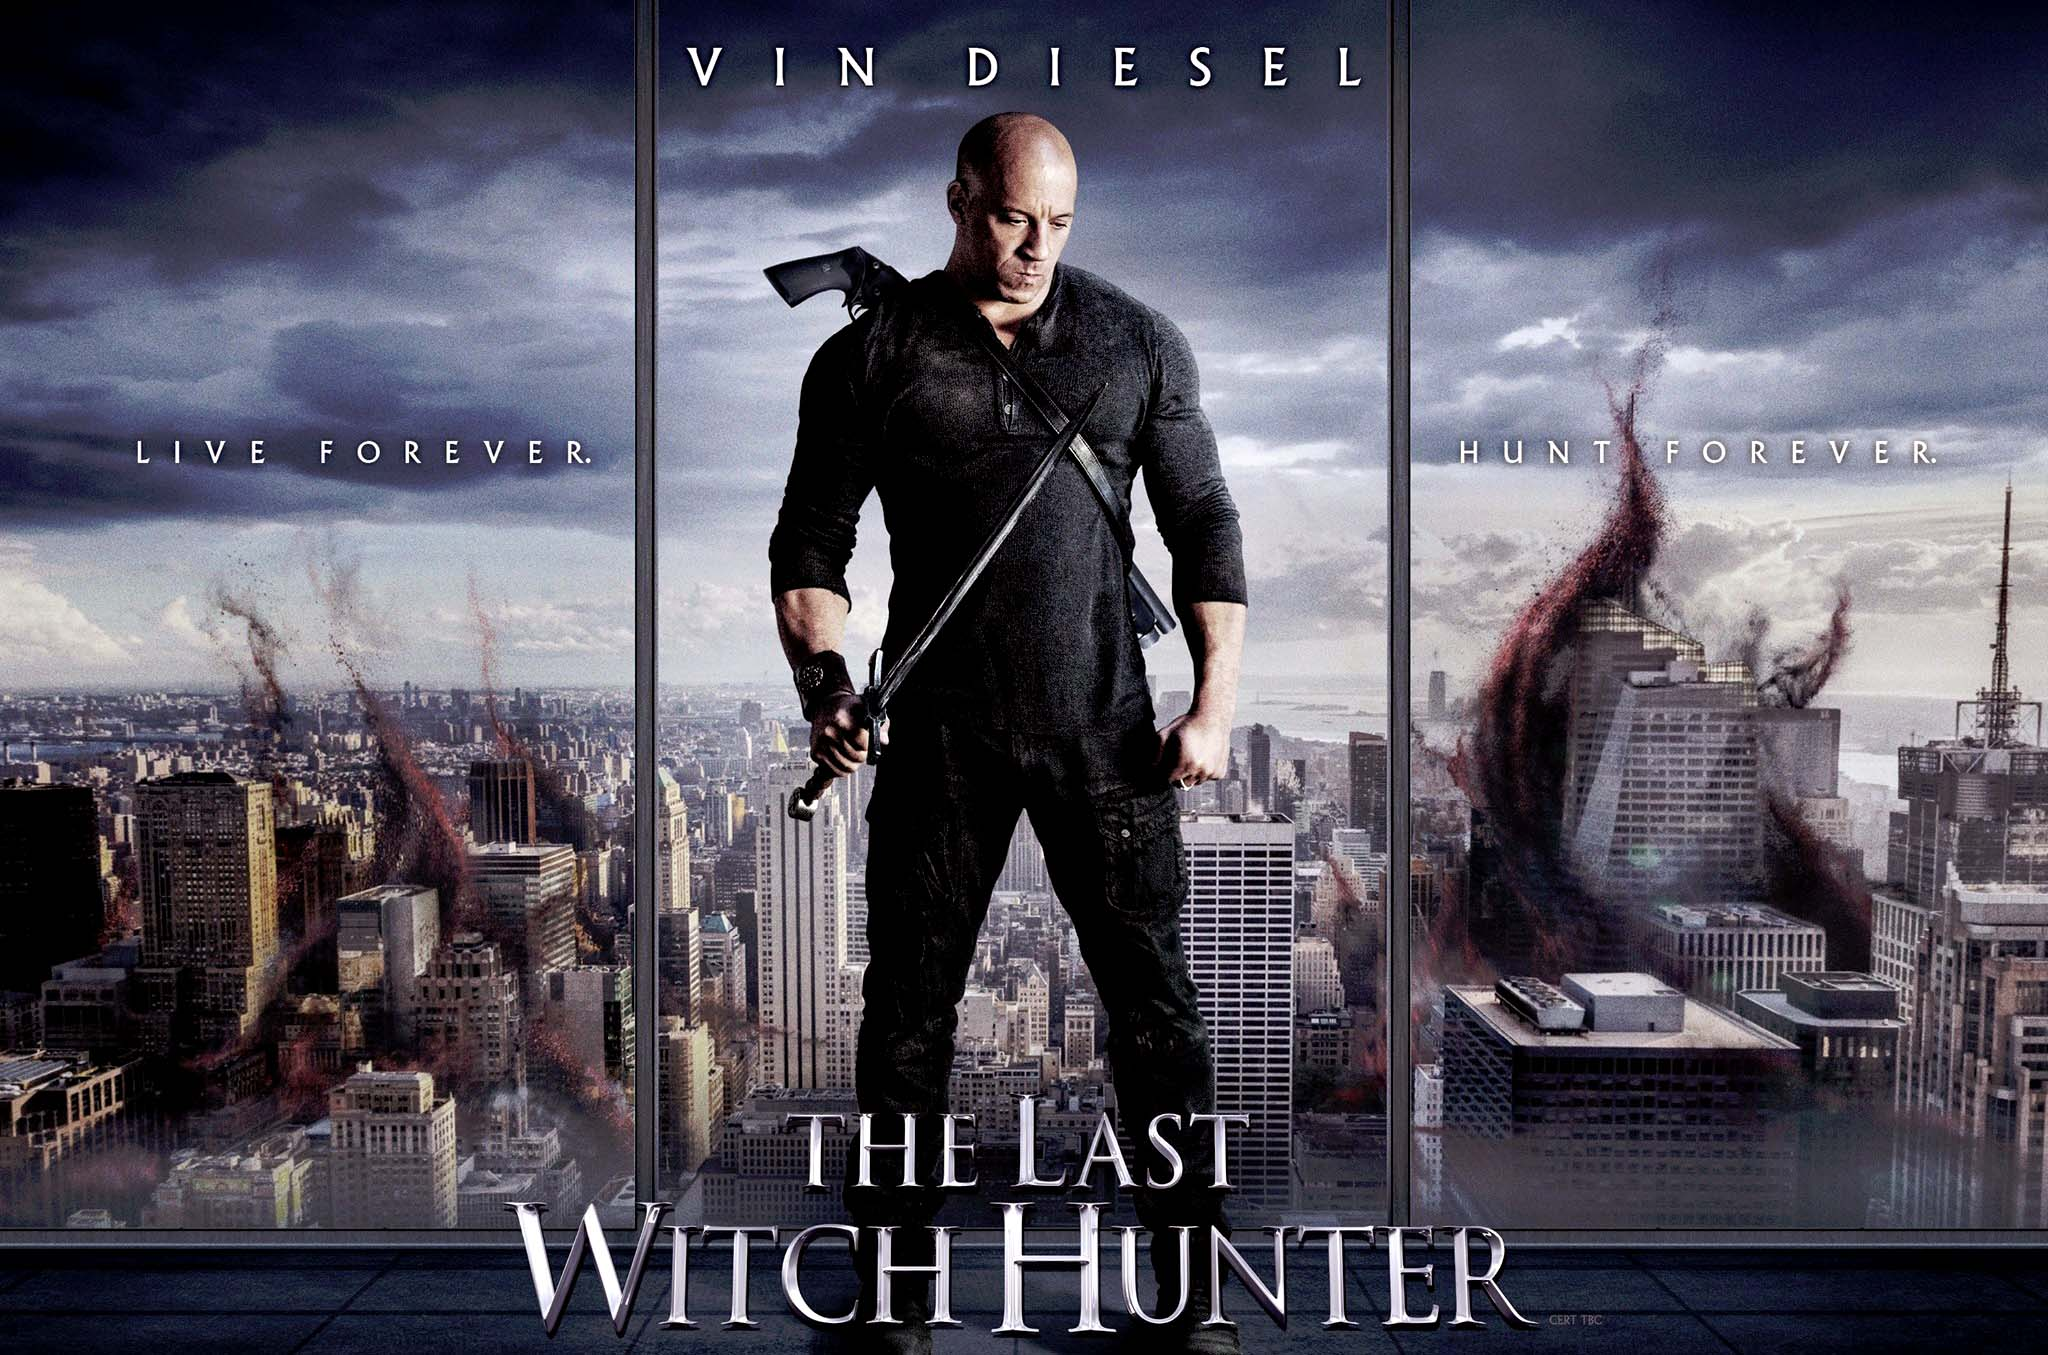 The Last Witch Hunter (2015) 1080p WEB-DL Movie Free Download